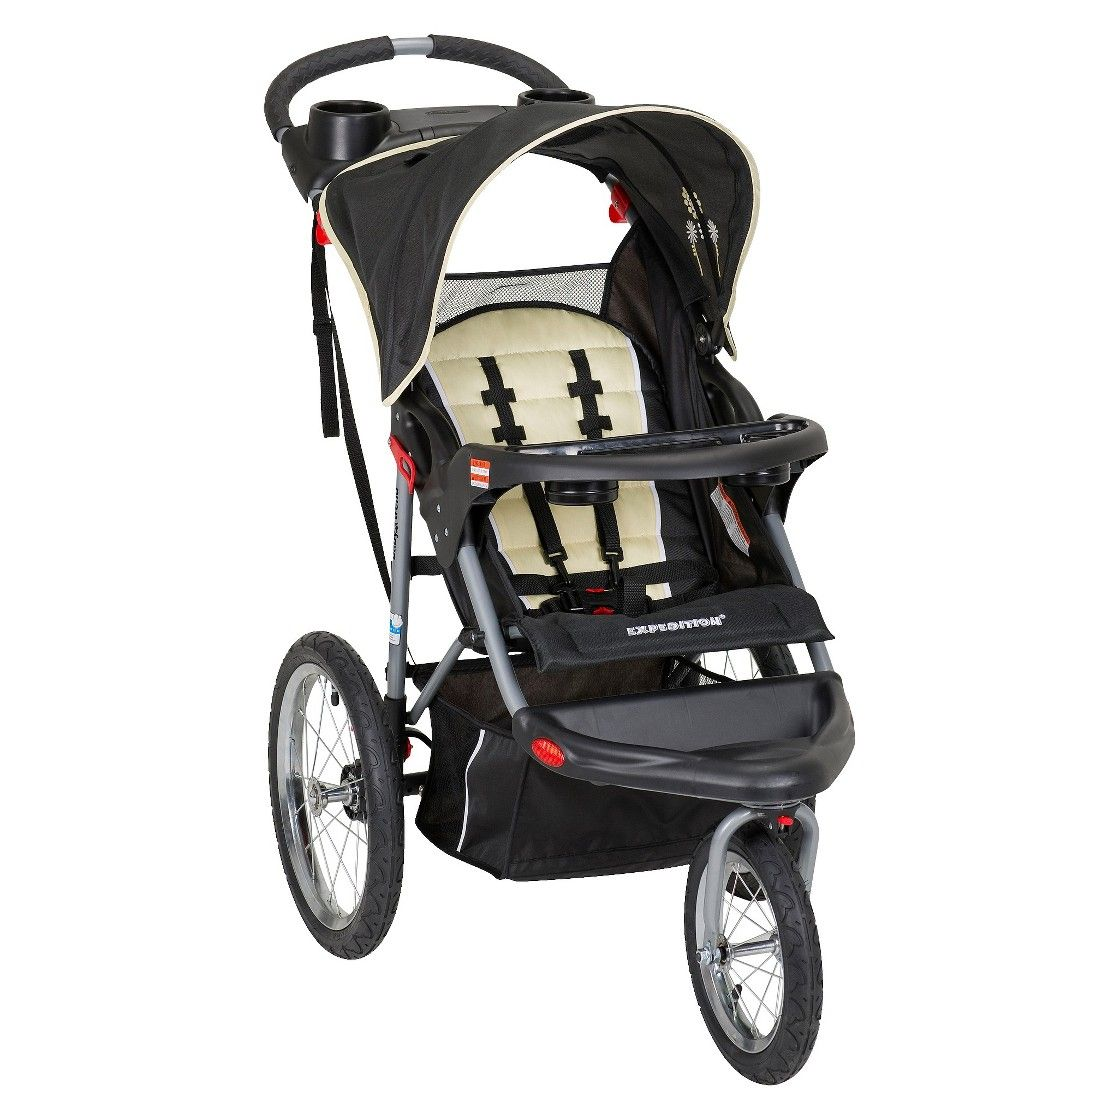 Baby Trend Expedition Jogging Stroller Folded Dimensions